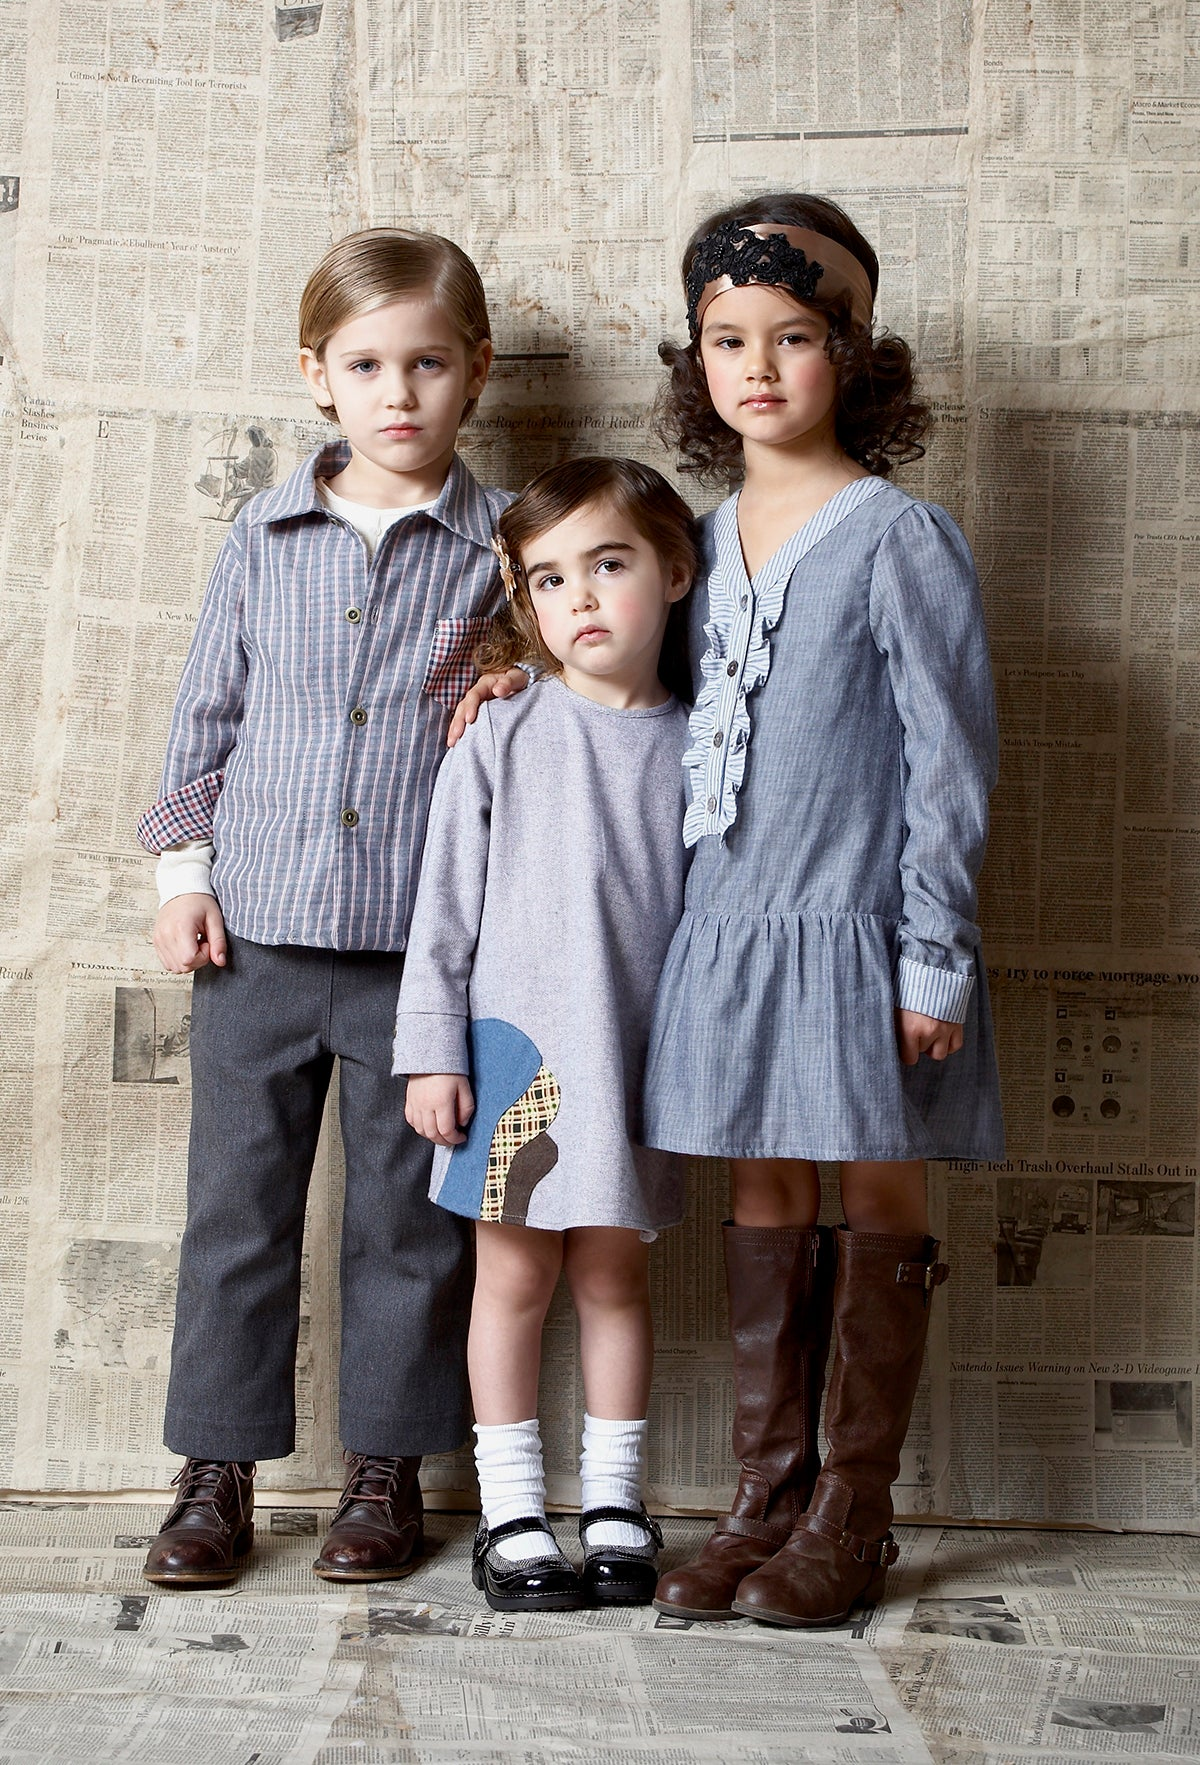 AUTUMN-WINTER collection 2011